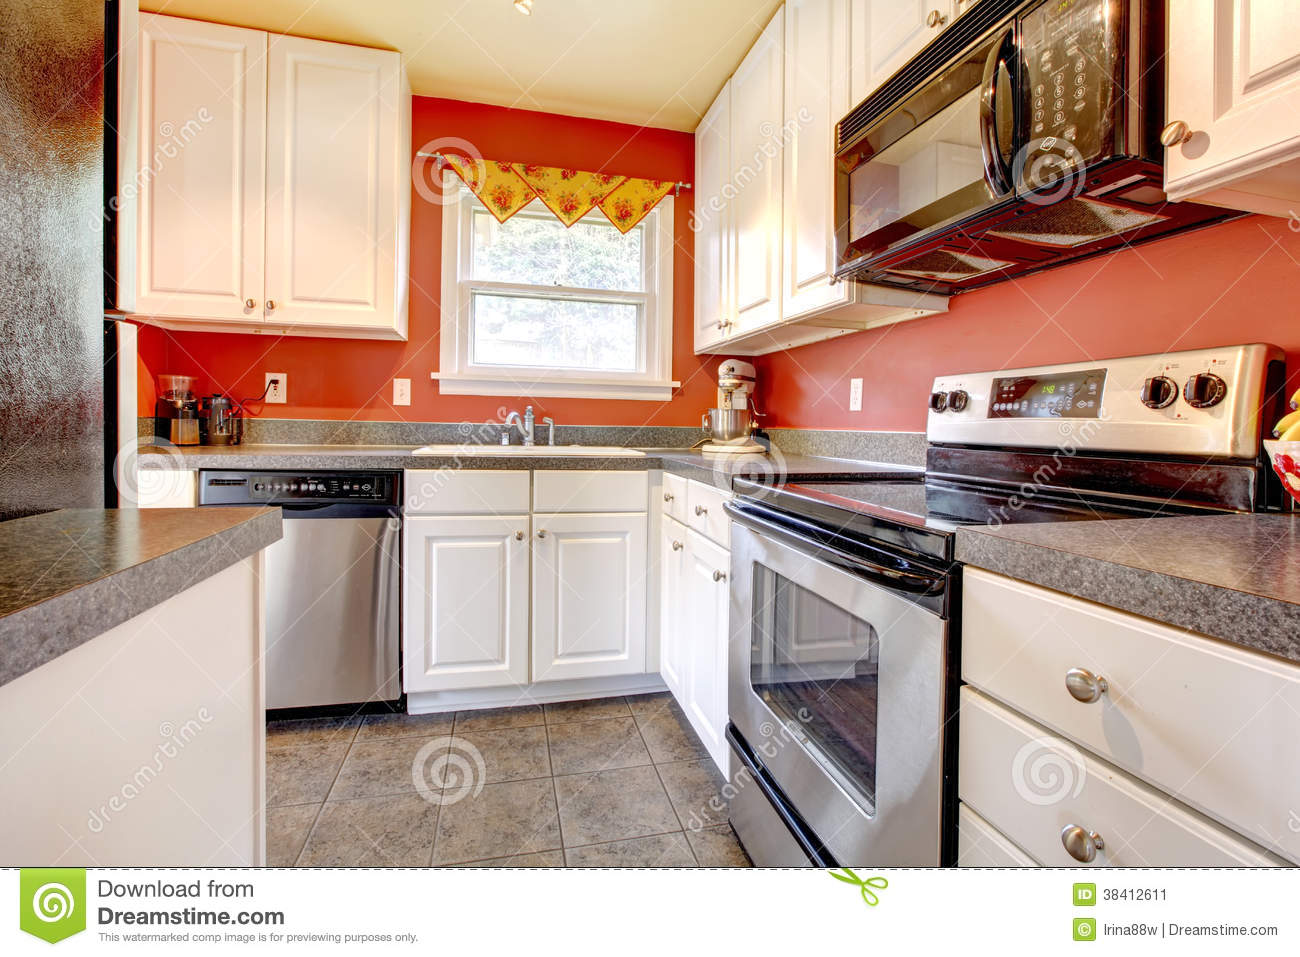 Cozy Kitchen Room With Red Wall And White Cabinets Stock Image ...